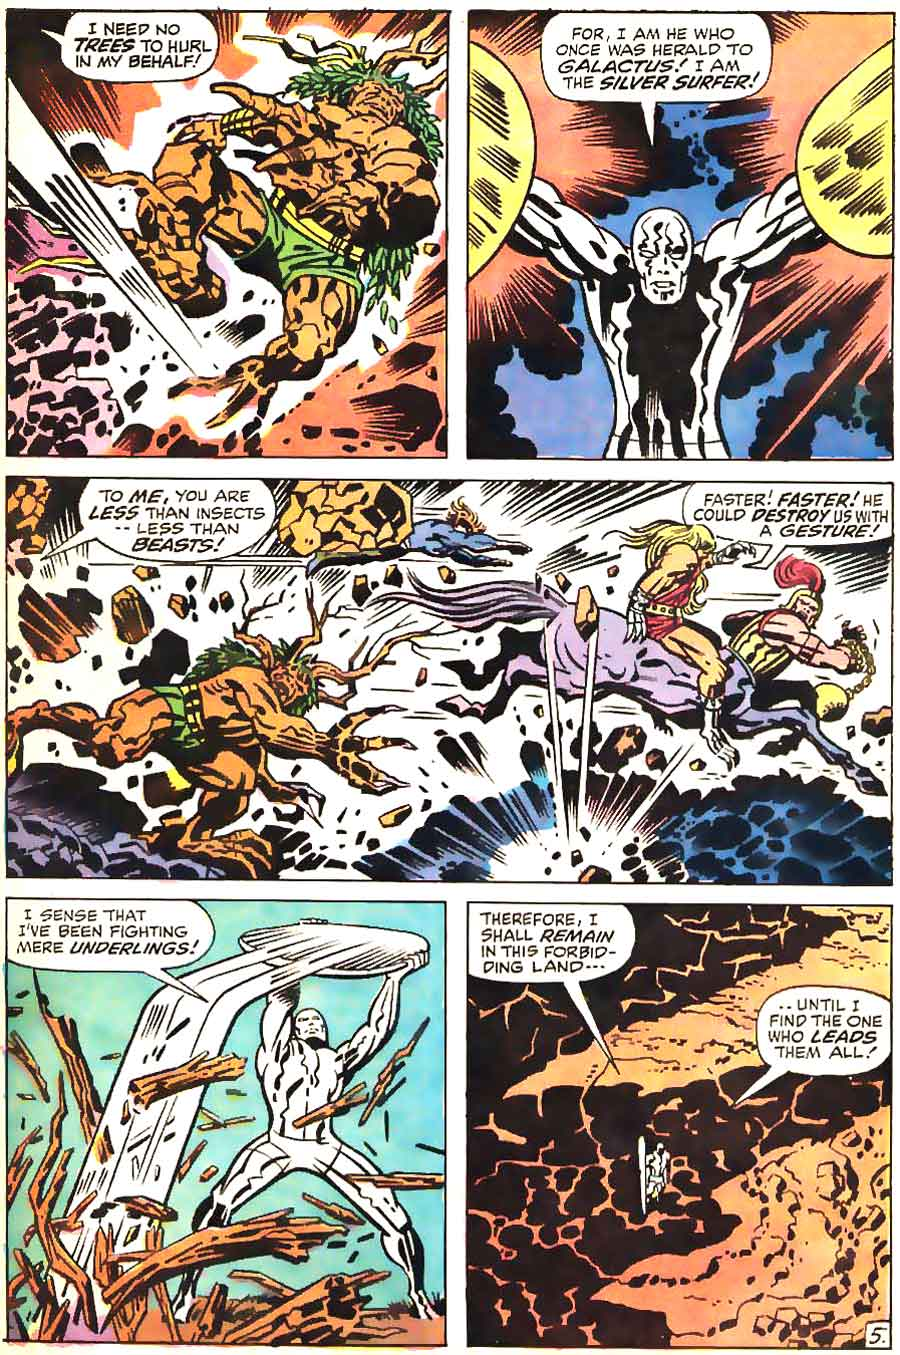 Silver Surfer v1 #18 marvel comic book page art by Jack Kirby